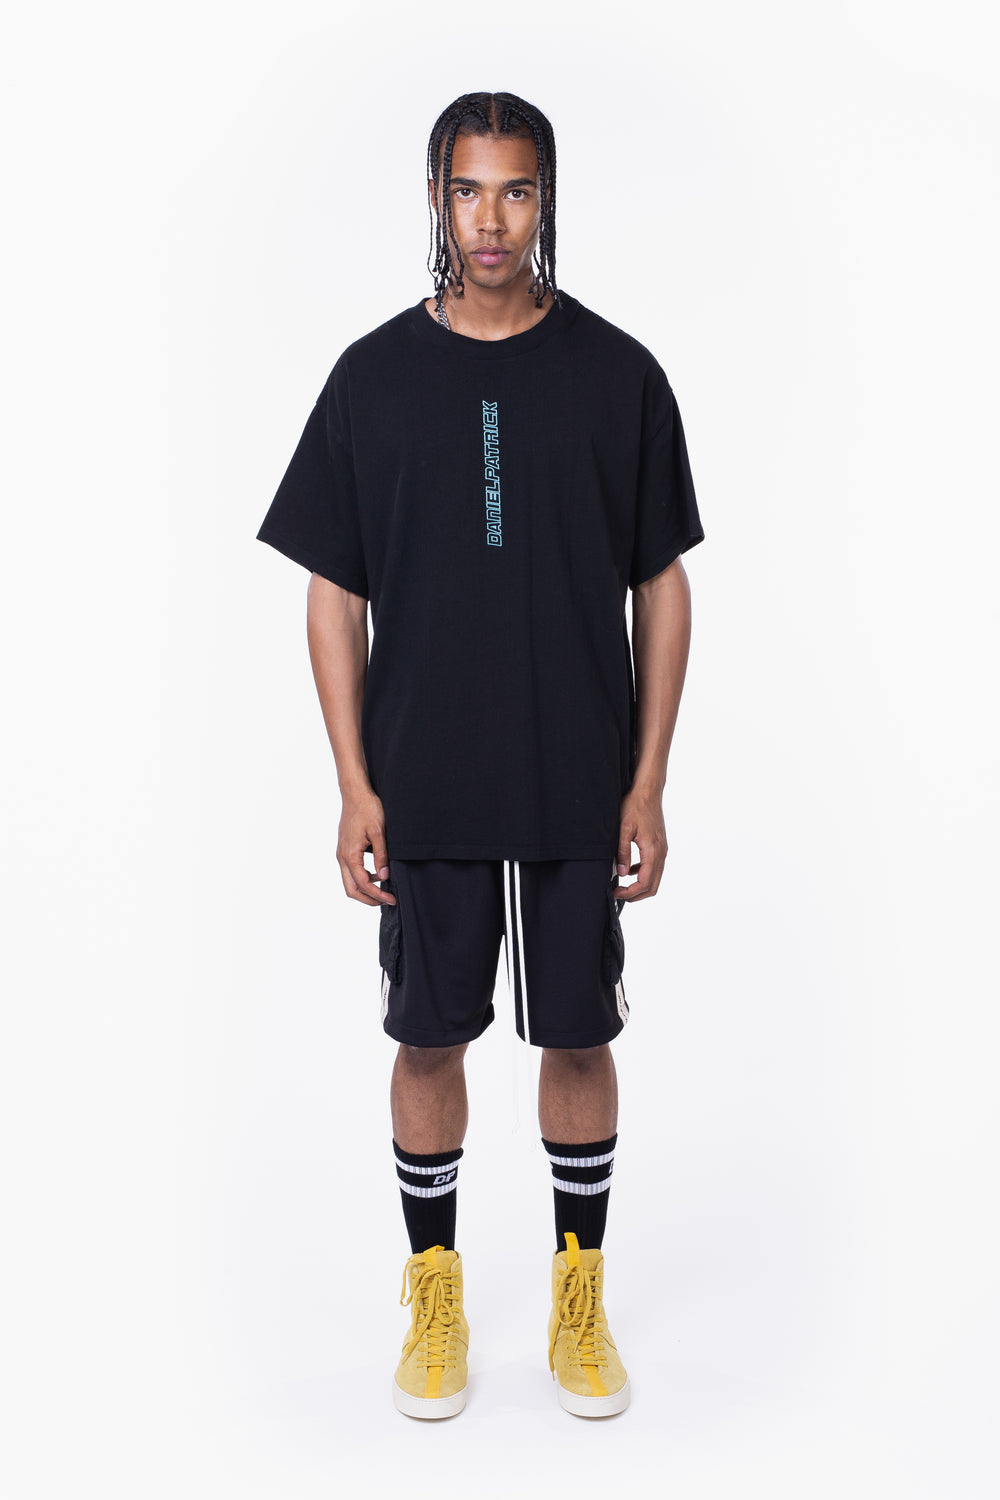 vertical logo tee / black + sea foam